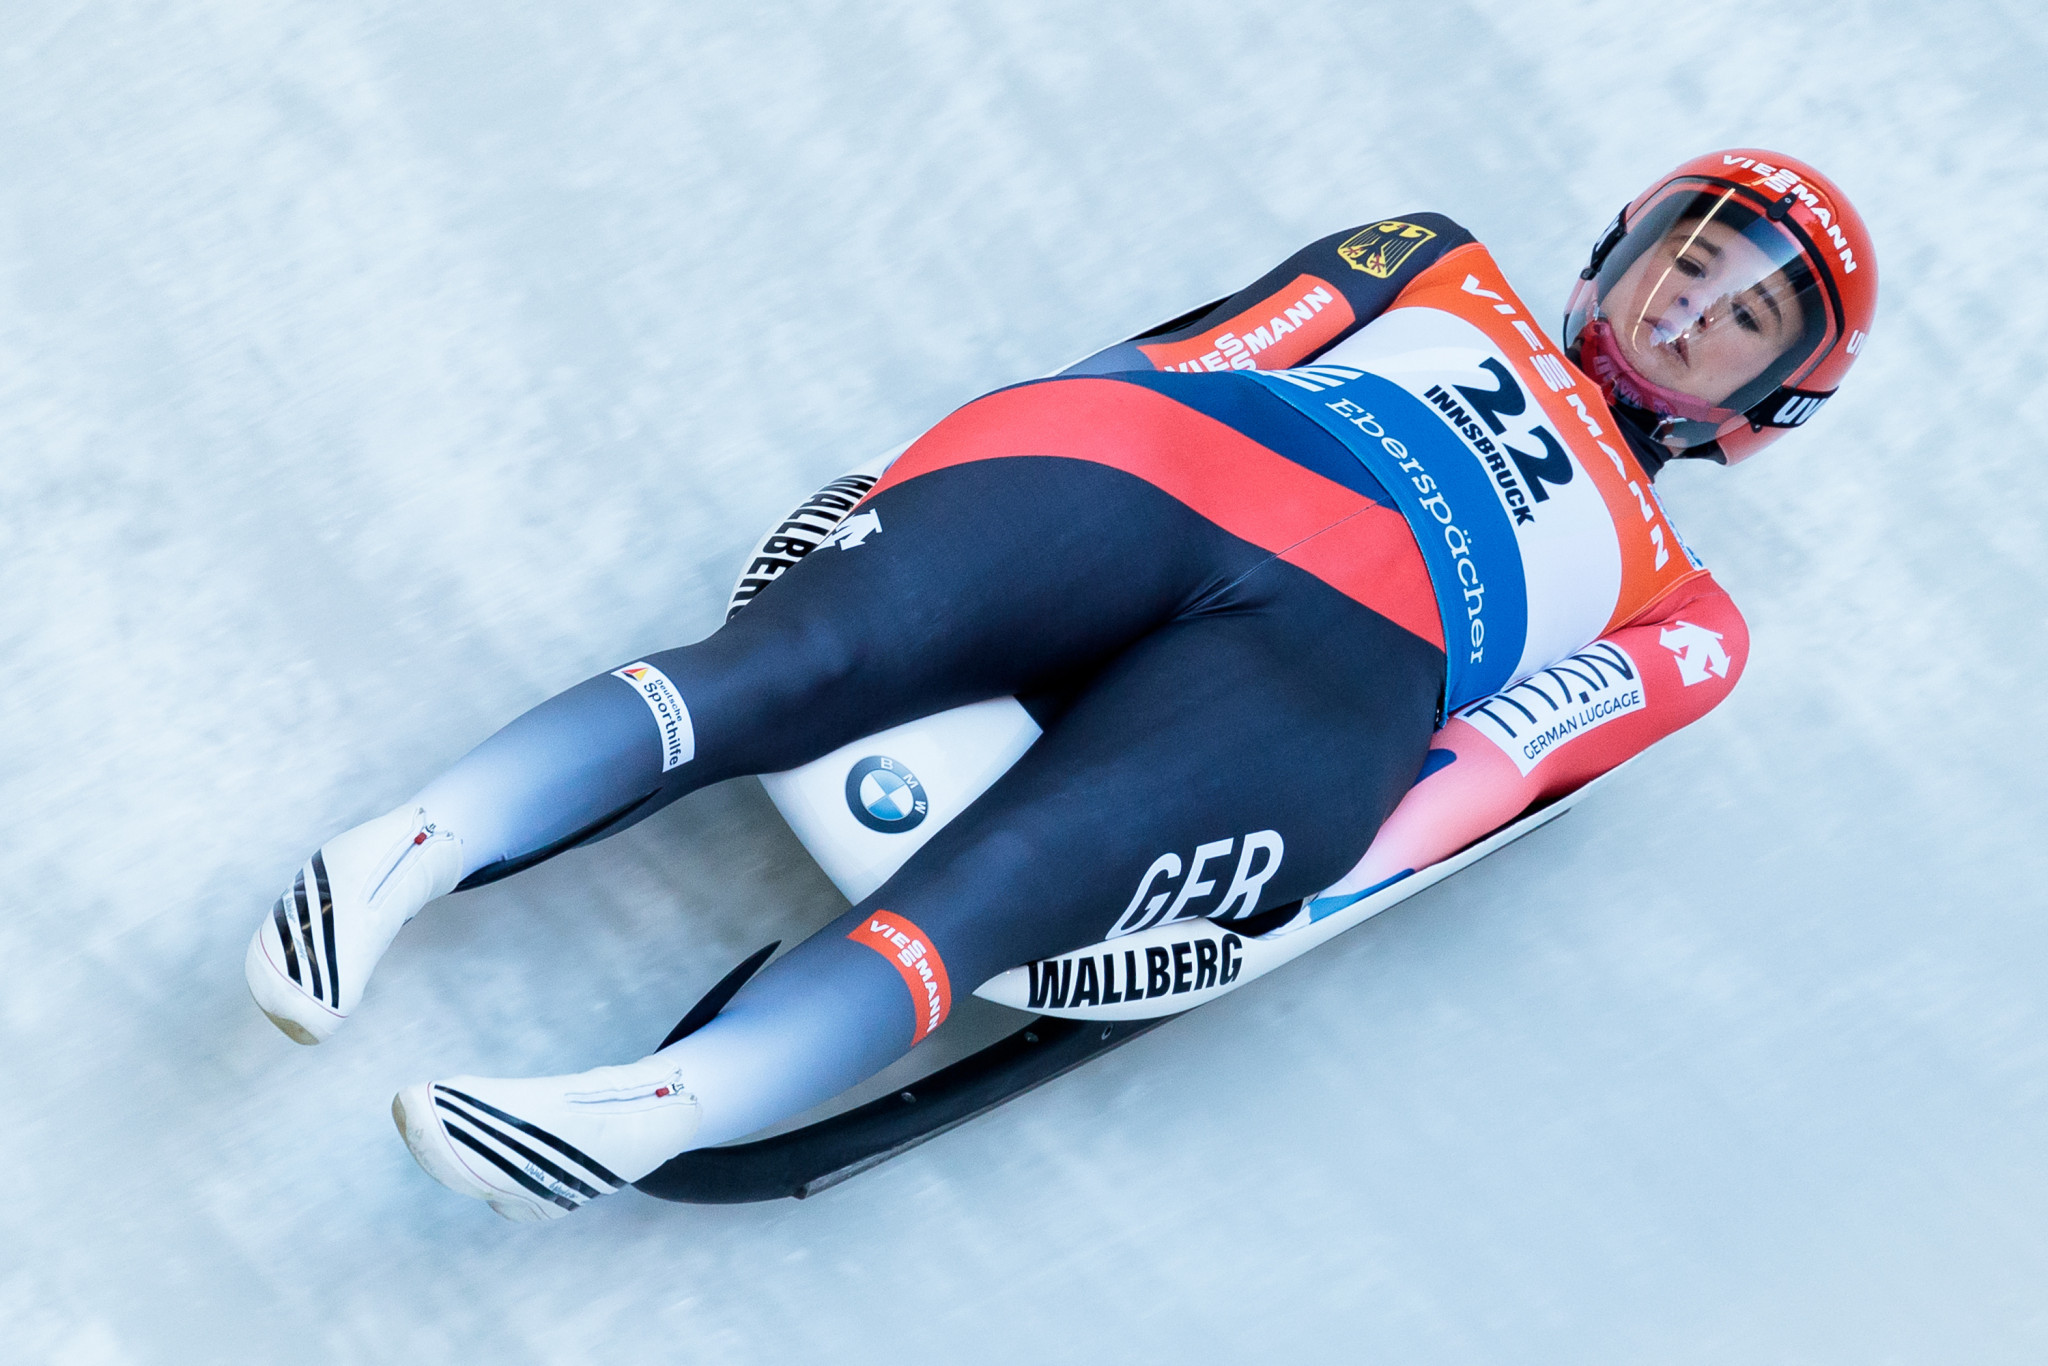 Natalie Geisenberger led a German clean sweep of the luge ©Getty Images